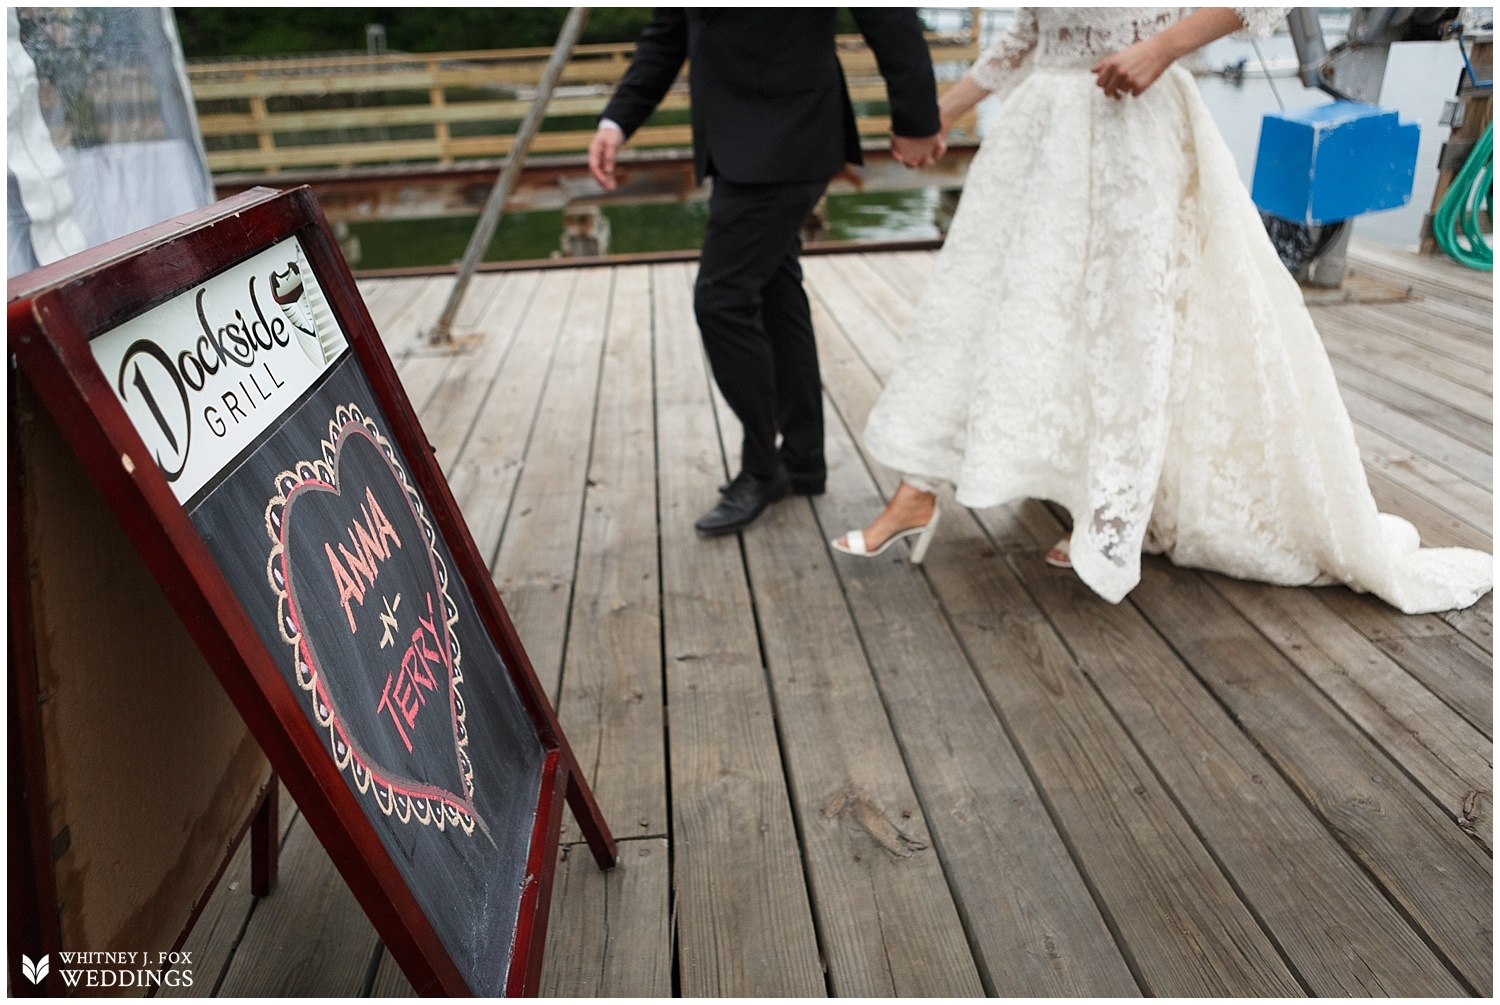 formal_seaside_summer_wedding_dockside_grill_falmouth_maine_photographer_whitney_j_fox_weddings_85.JPG